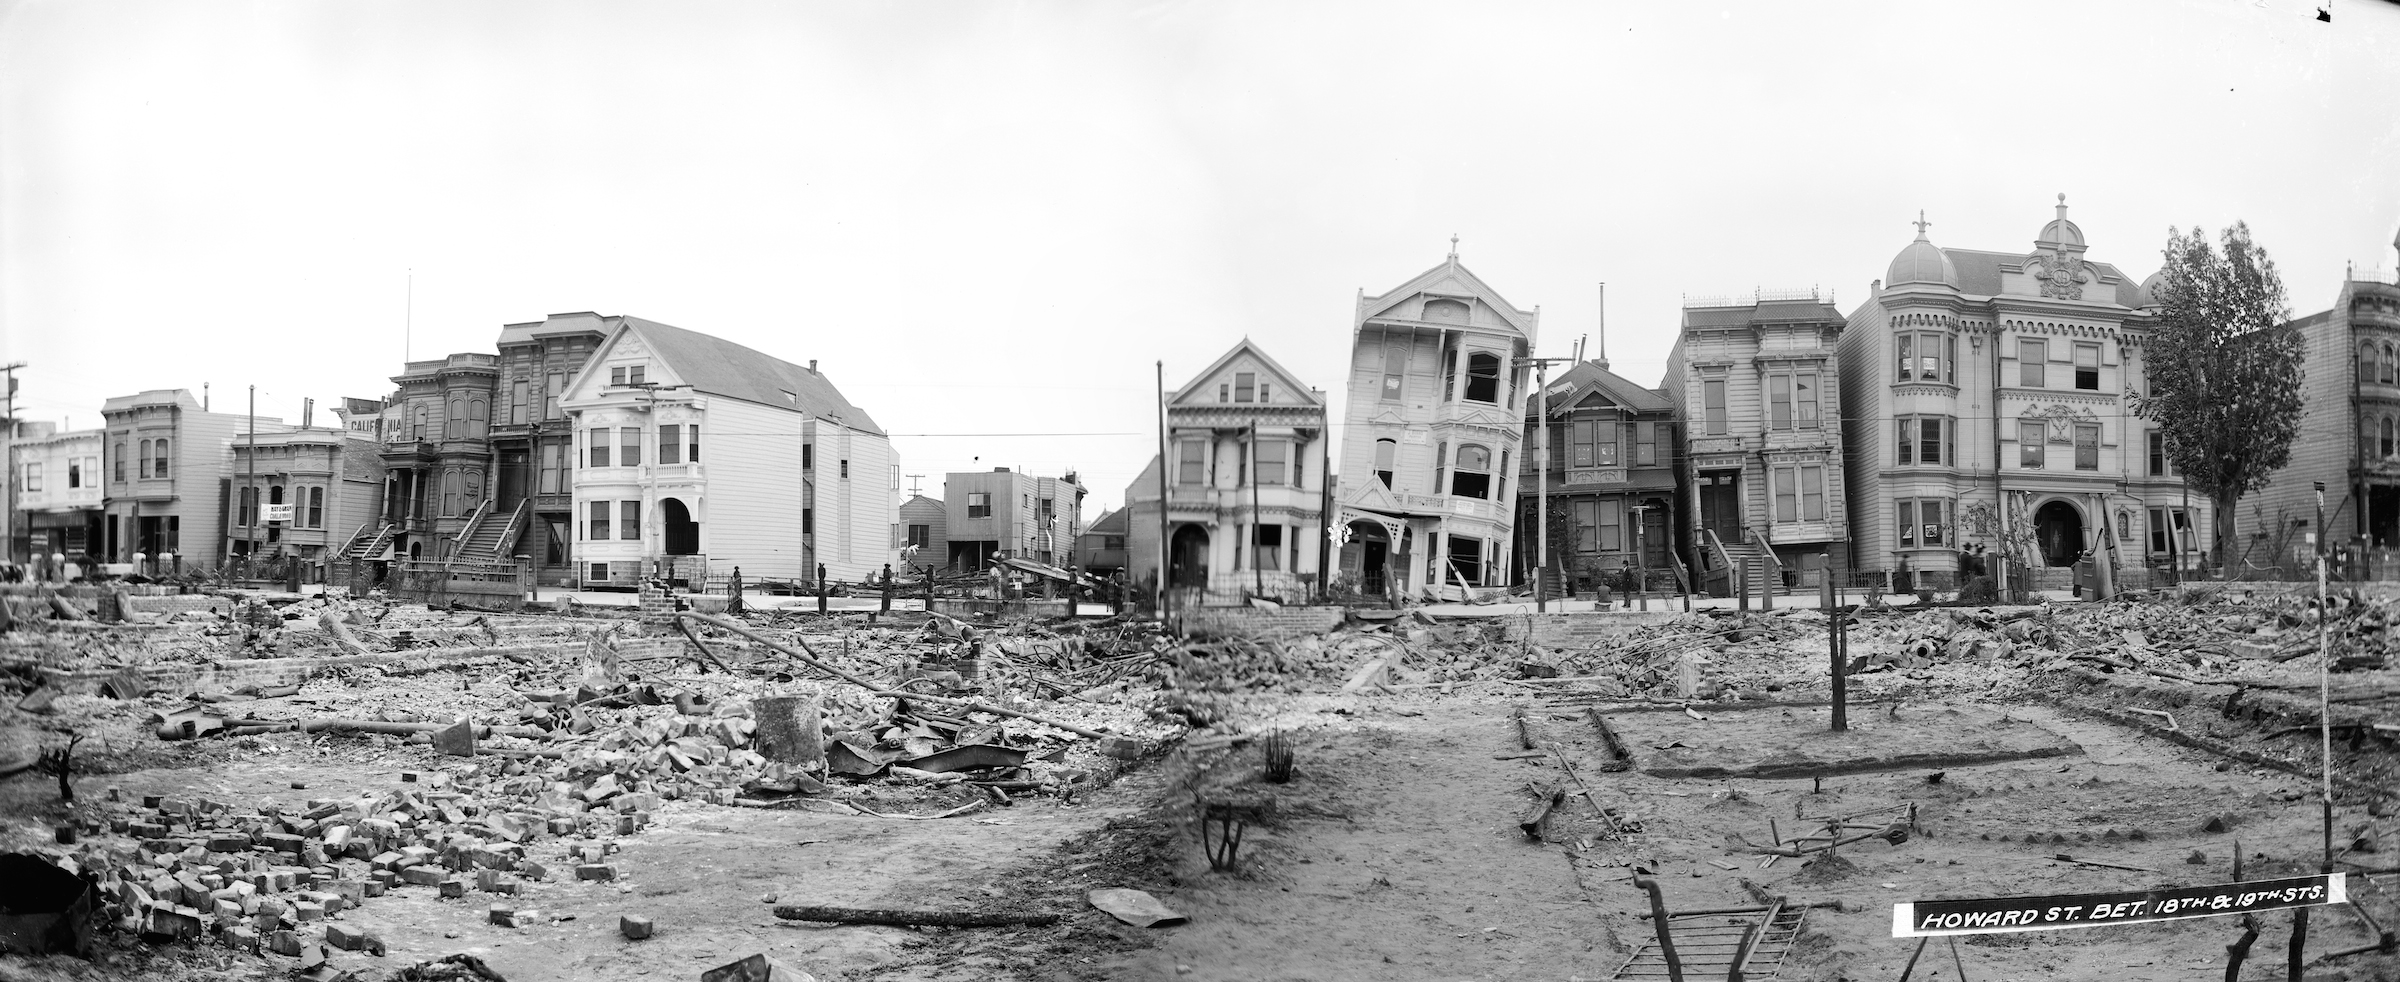 Panoramic of Earthquake Destruction on Howard Street Between 18th and 19th Streets | May 9, 1906 | U00813-814